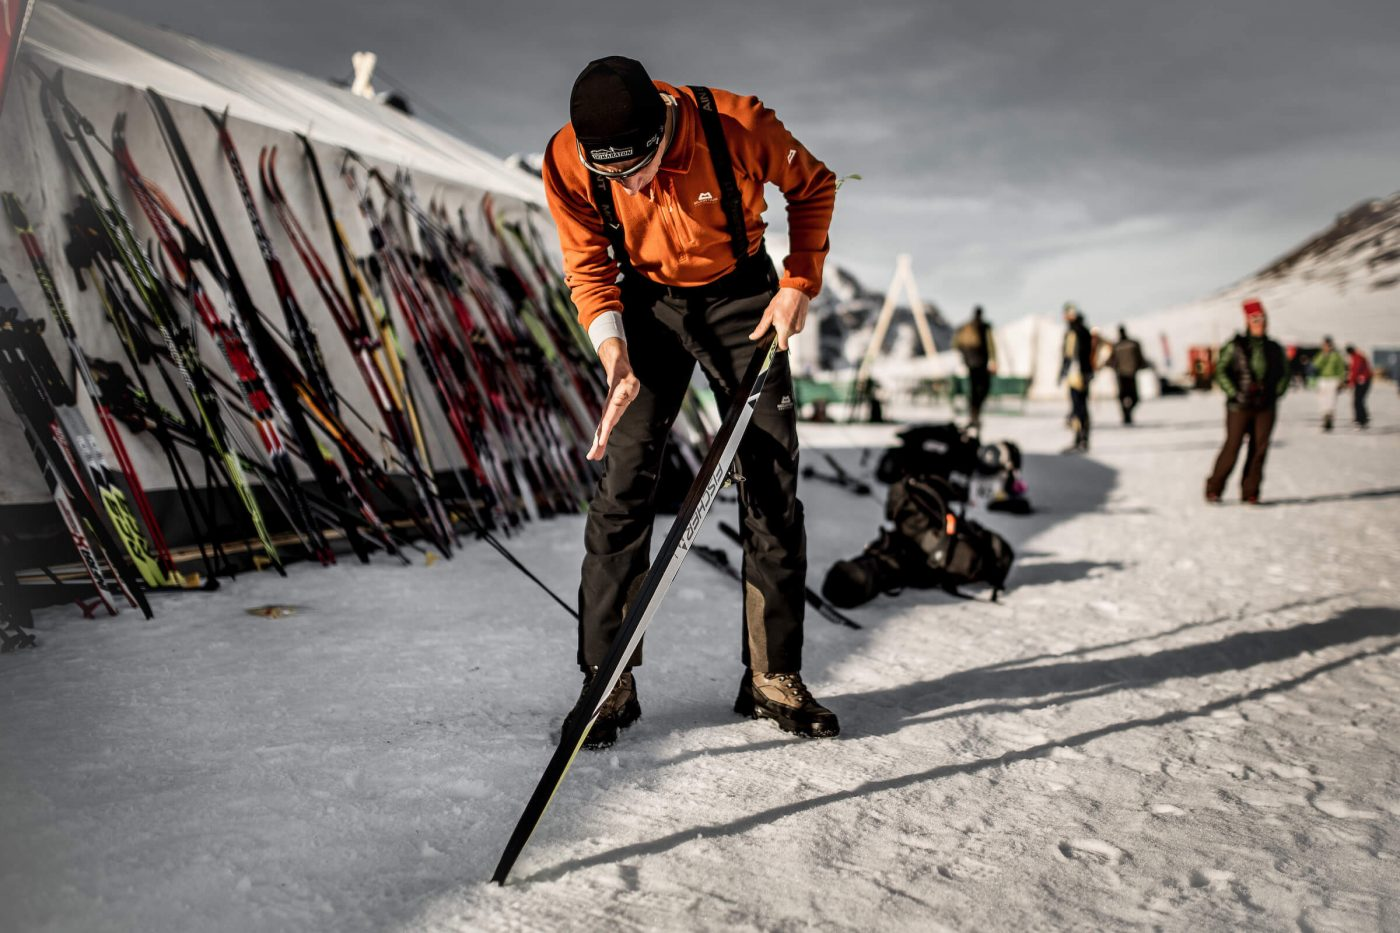 A skier in the Arctic Circle Race camp preparing his skis. Photo by Mads Pihl, Visit Greenland